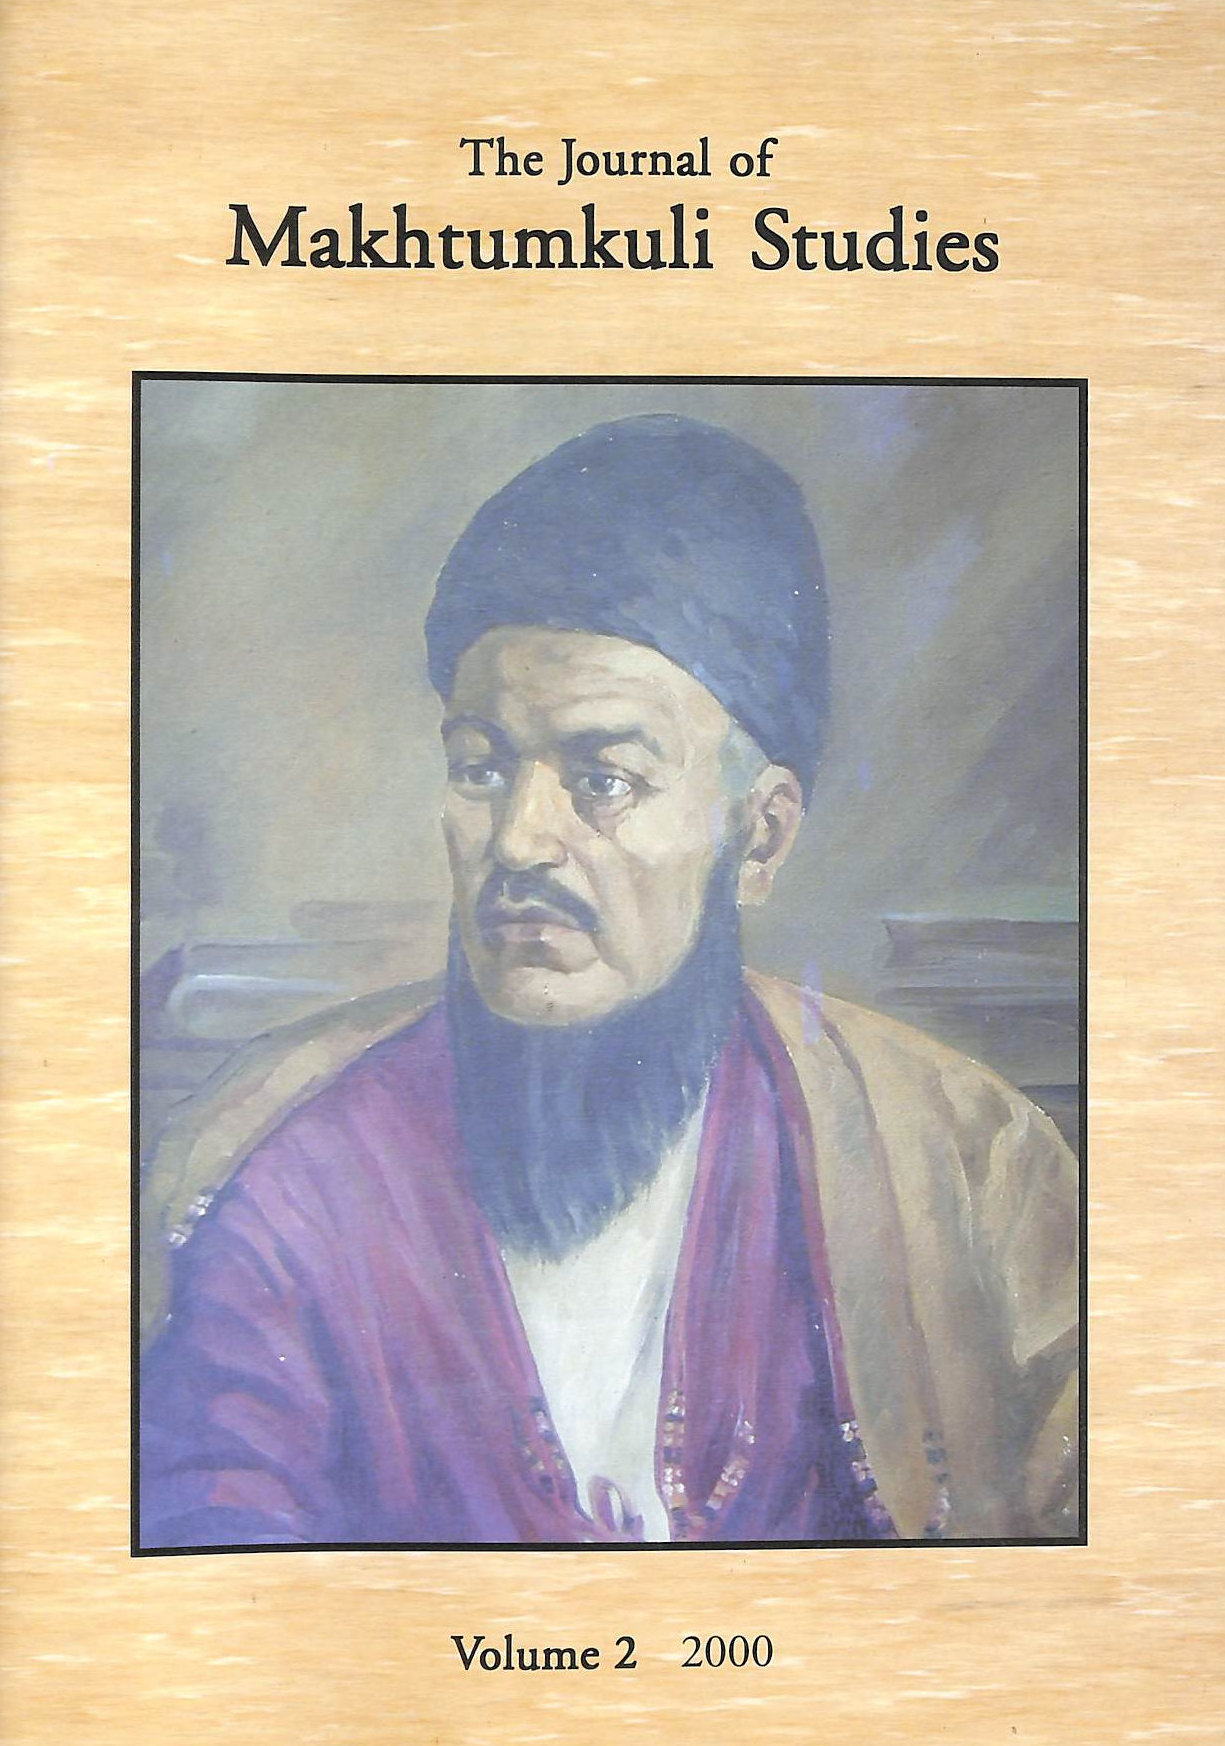 Image for The Journal of Makhtumkuli Studies Volume 2